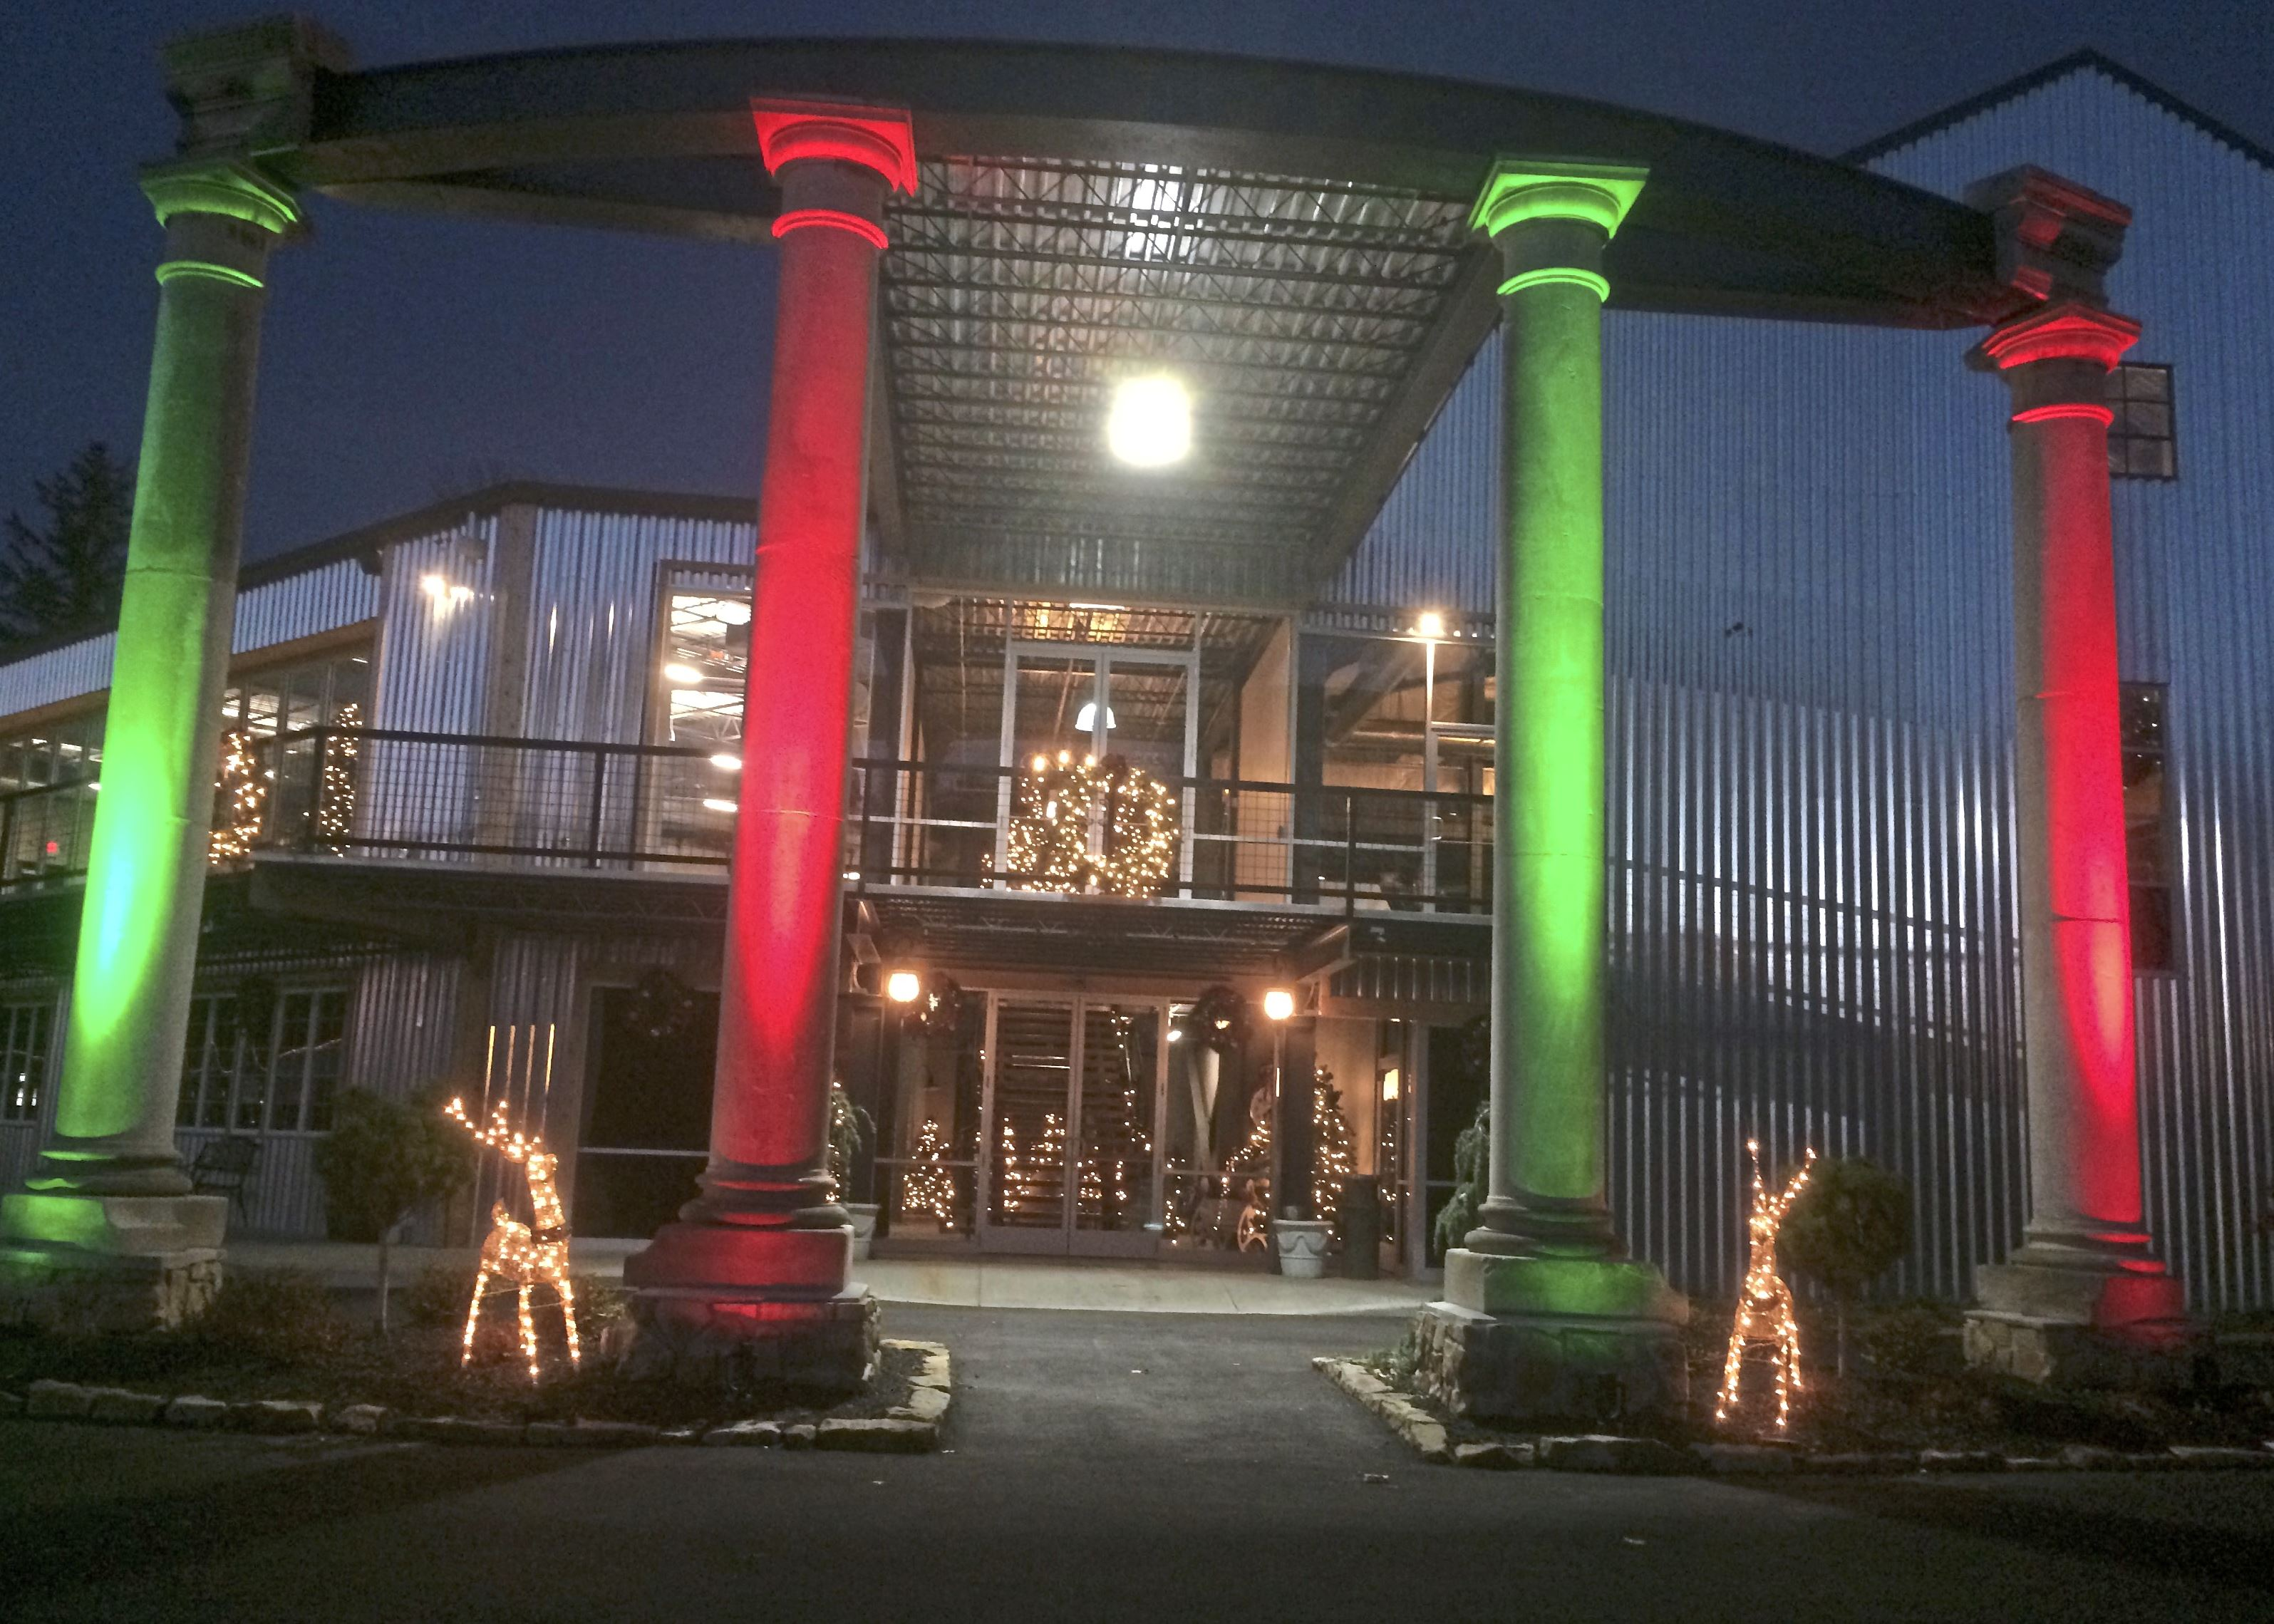 CR Brewing Co._7768 The new entrance to CR Brewing Co. in Neshannock features stone columns, now lit for the holidays, from the former Elks lodge in nearby New Castle.